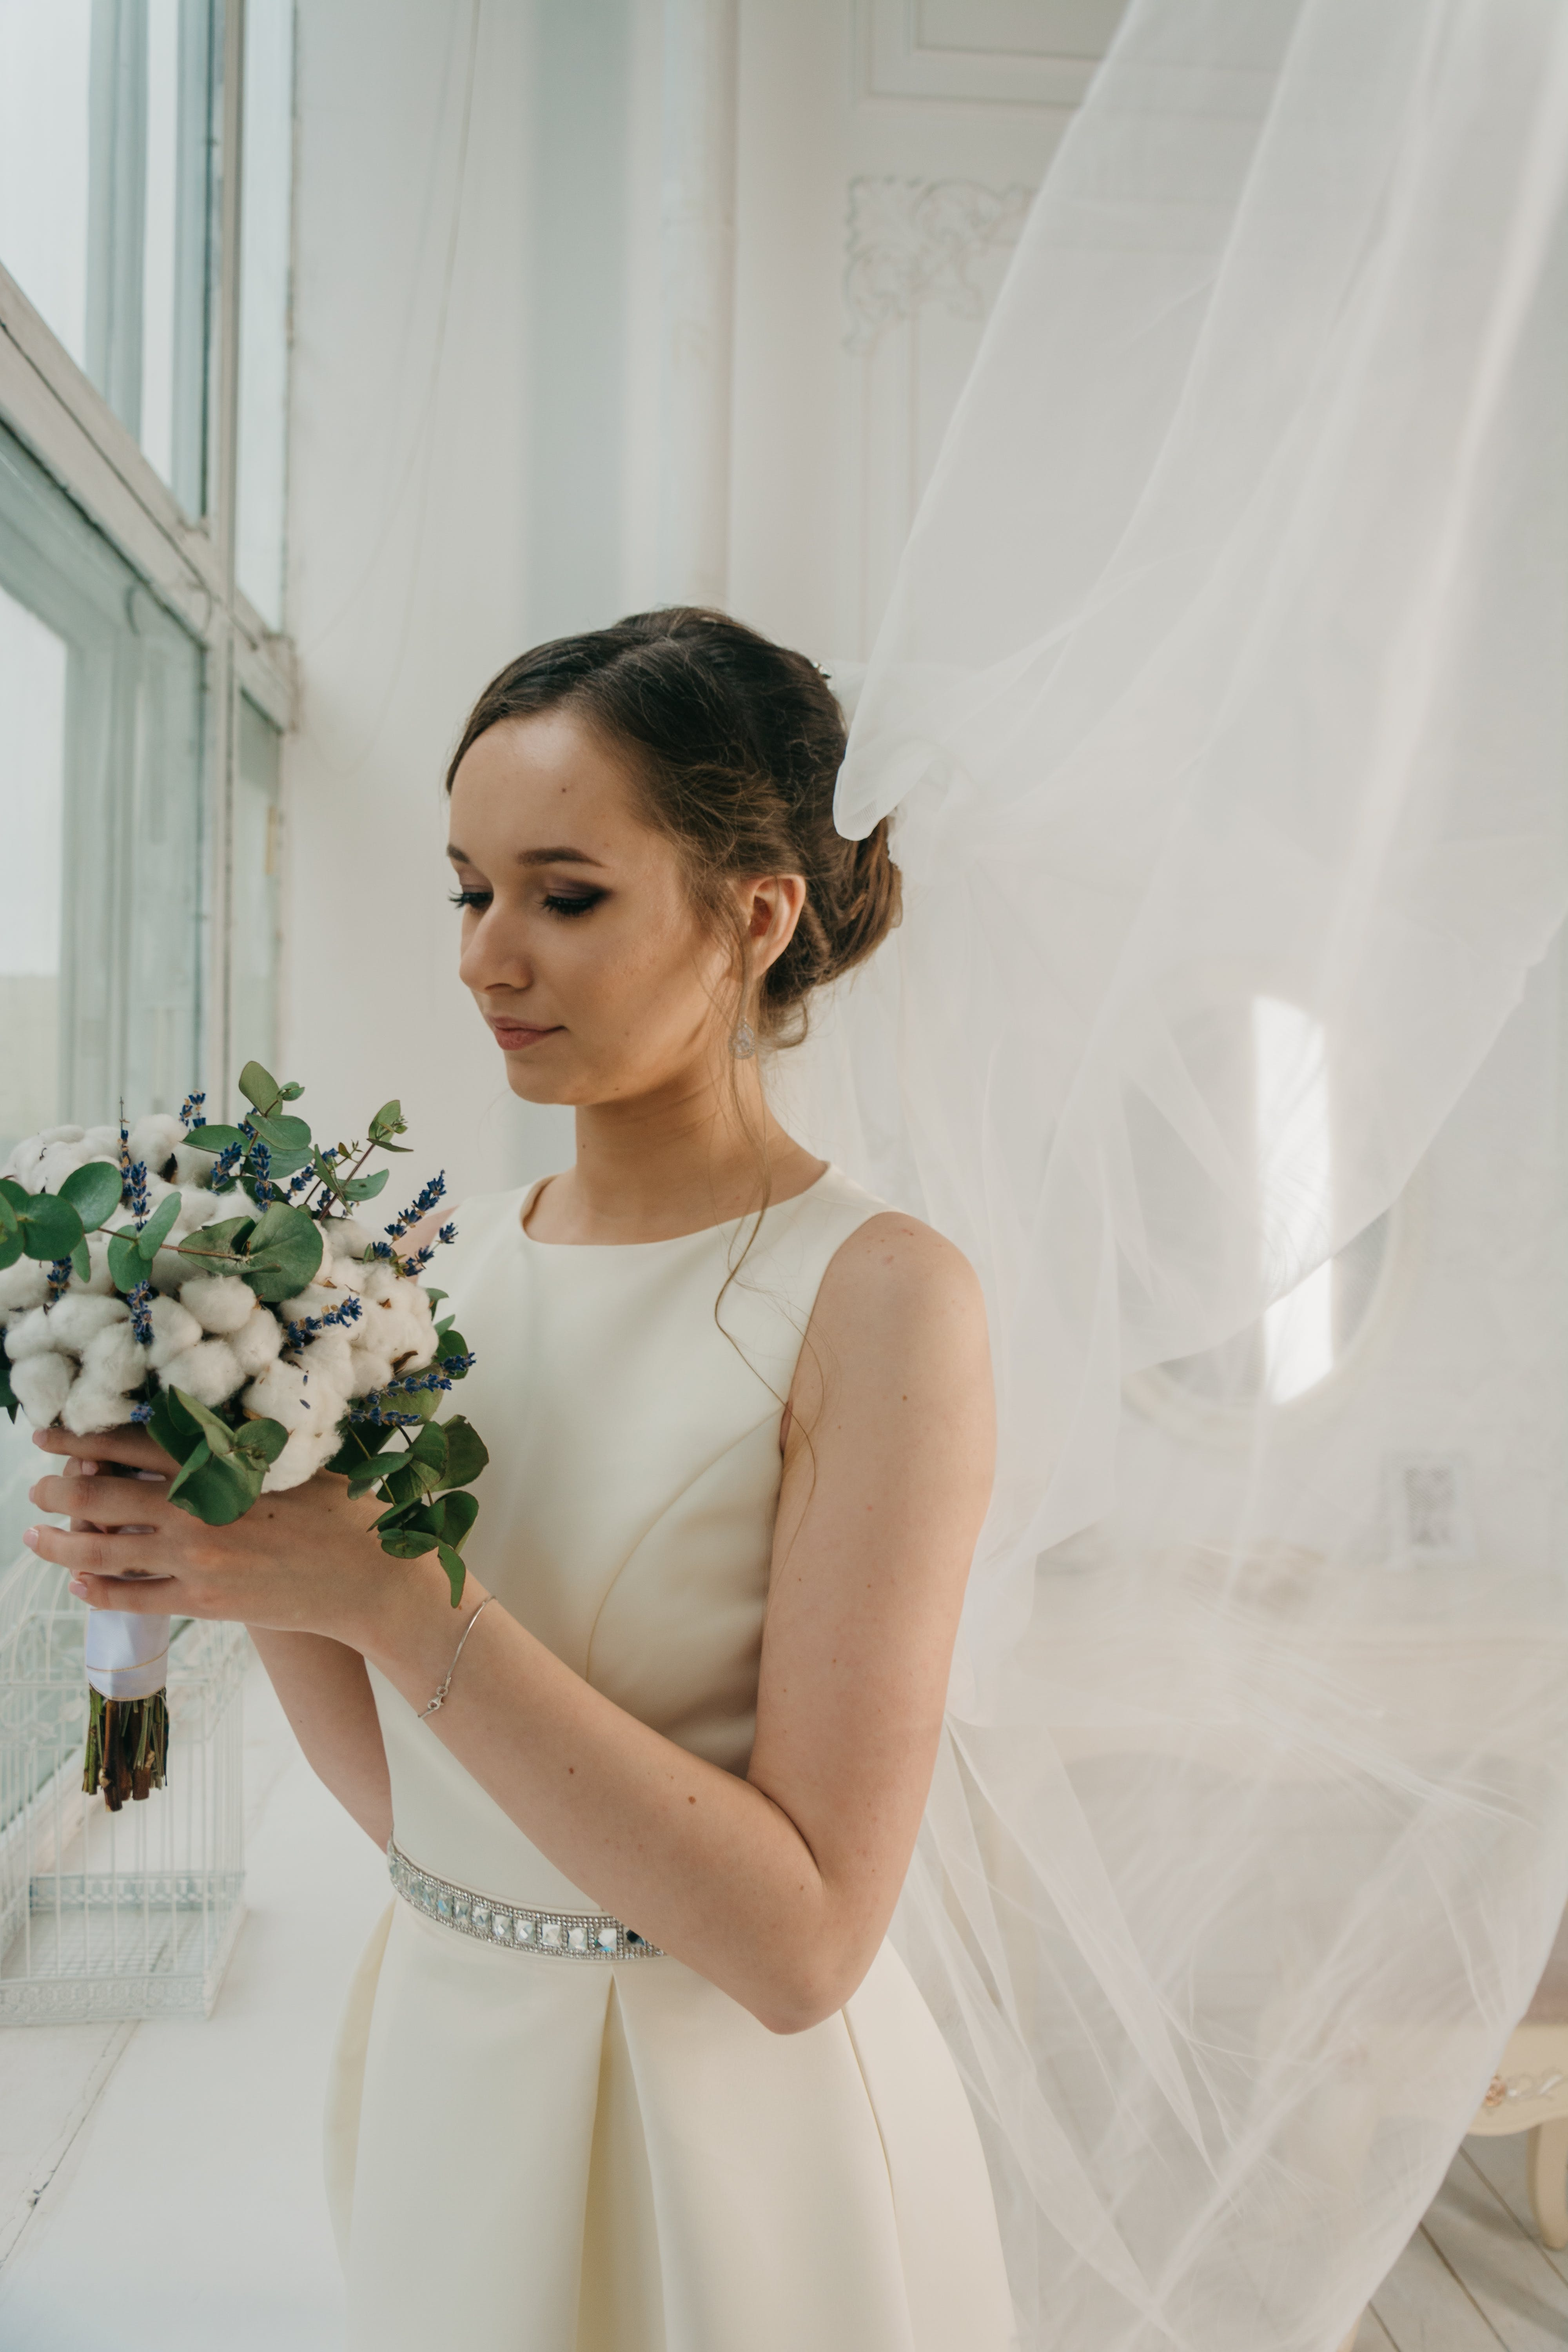 Woman in White Sleeveless Gown Holding White Flower Bouquet Infront of Window